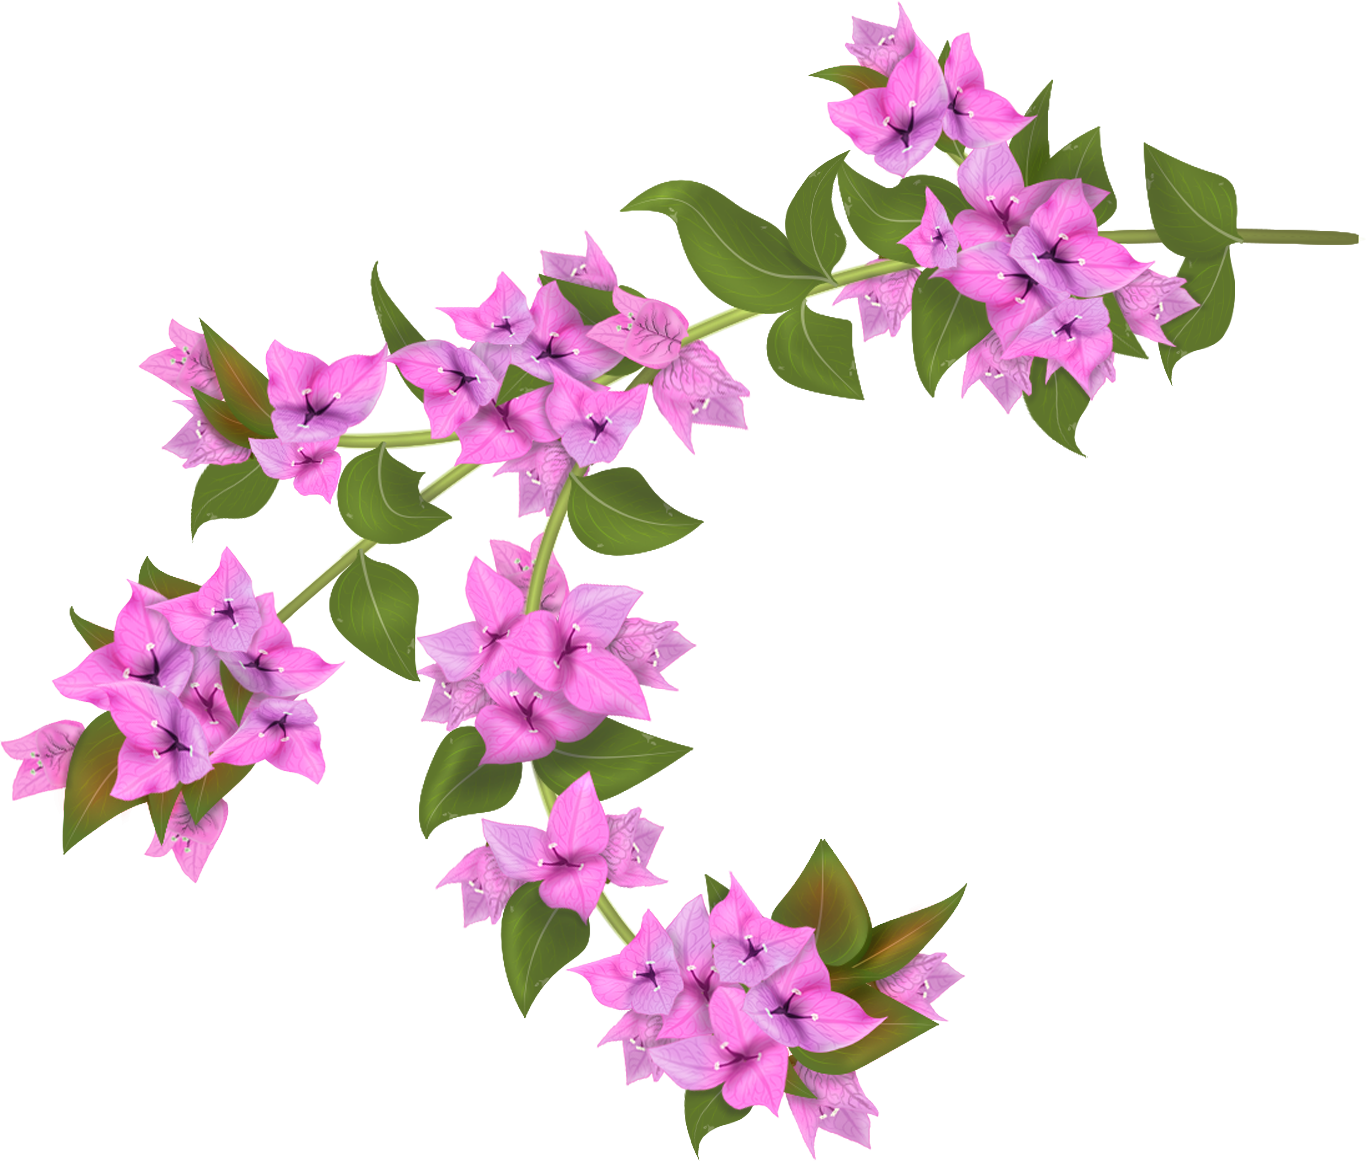 Bougainvillea drawing botanical illustration. Flowers painting illoustrator png